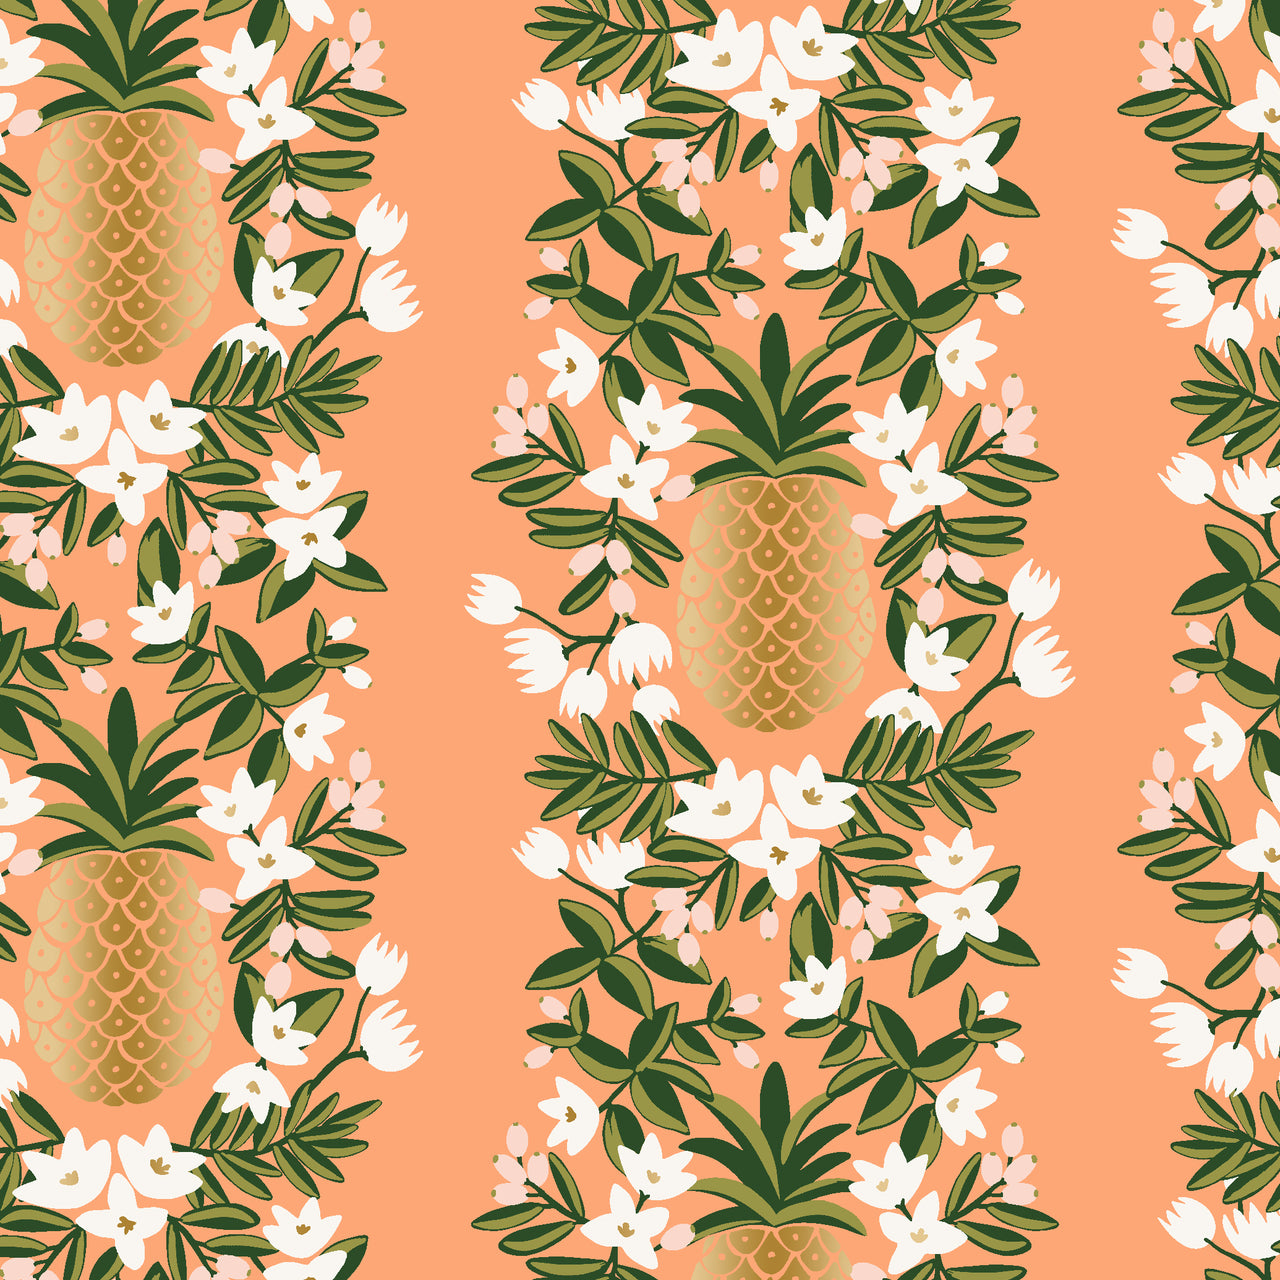 Primavera by Rifle Paper Co : Pineapple Stripe in Peach Metallic : Cotton and Steel : Canvas